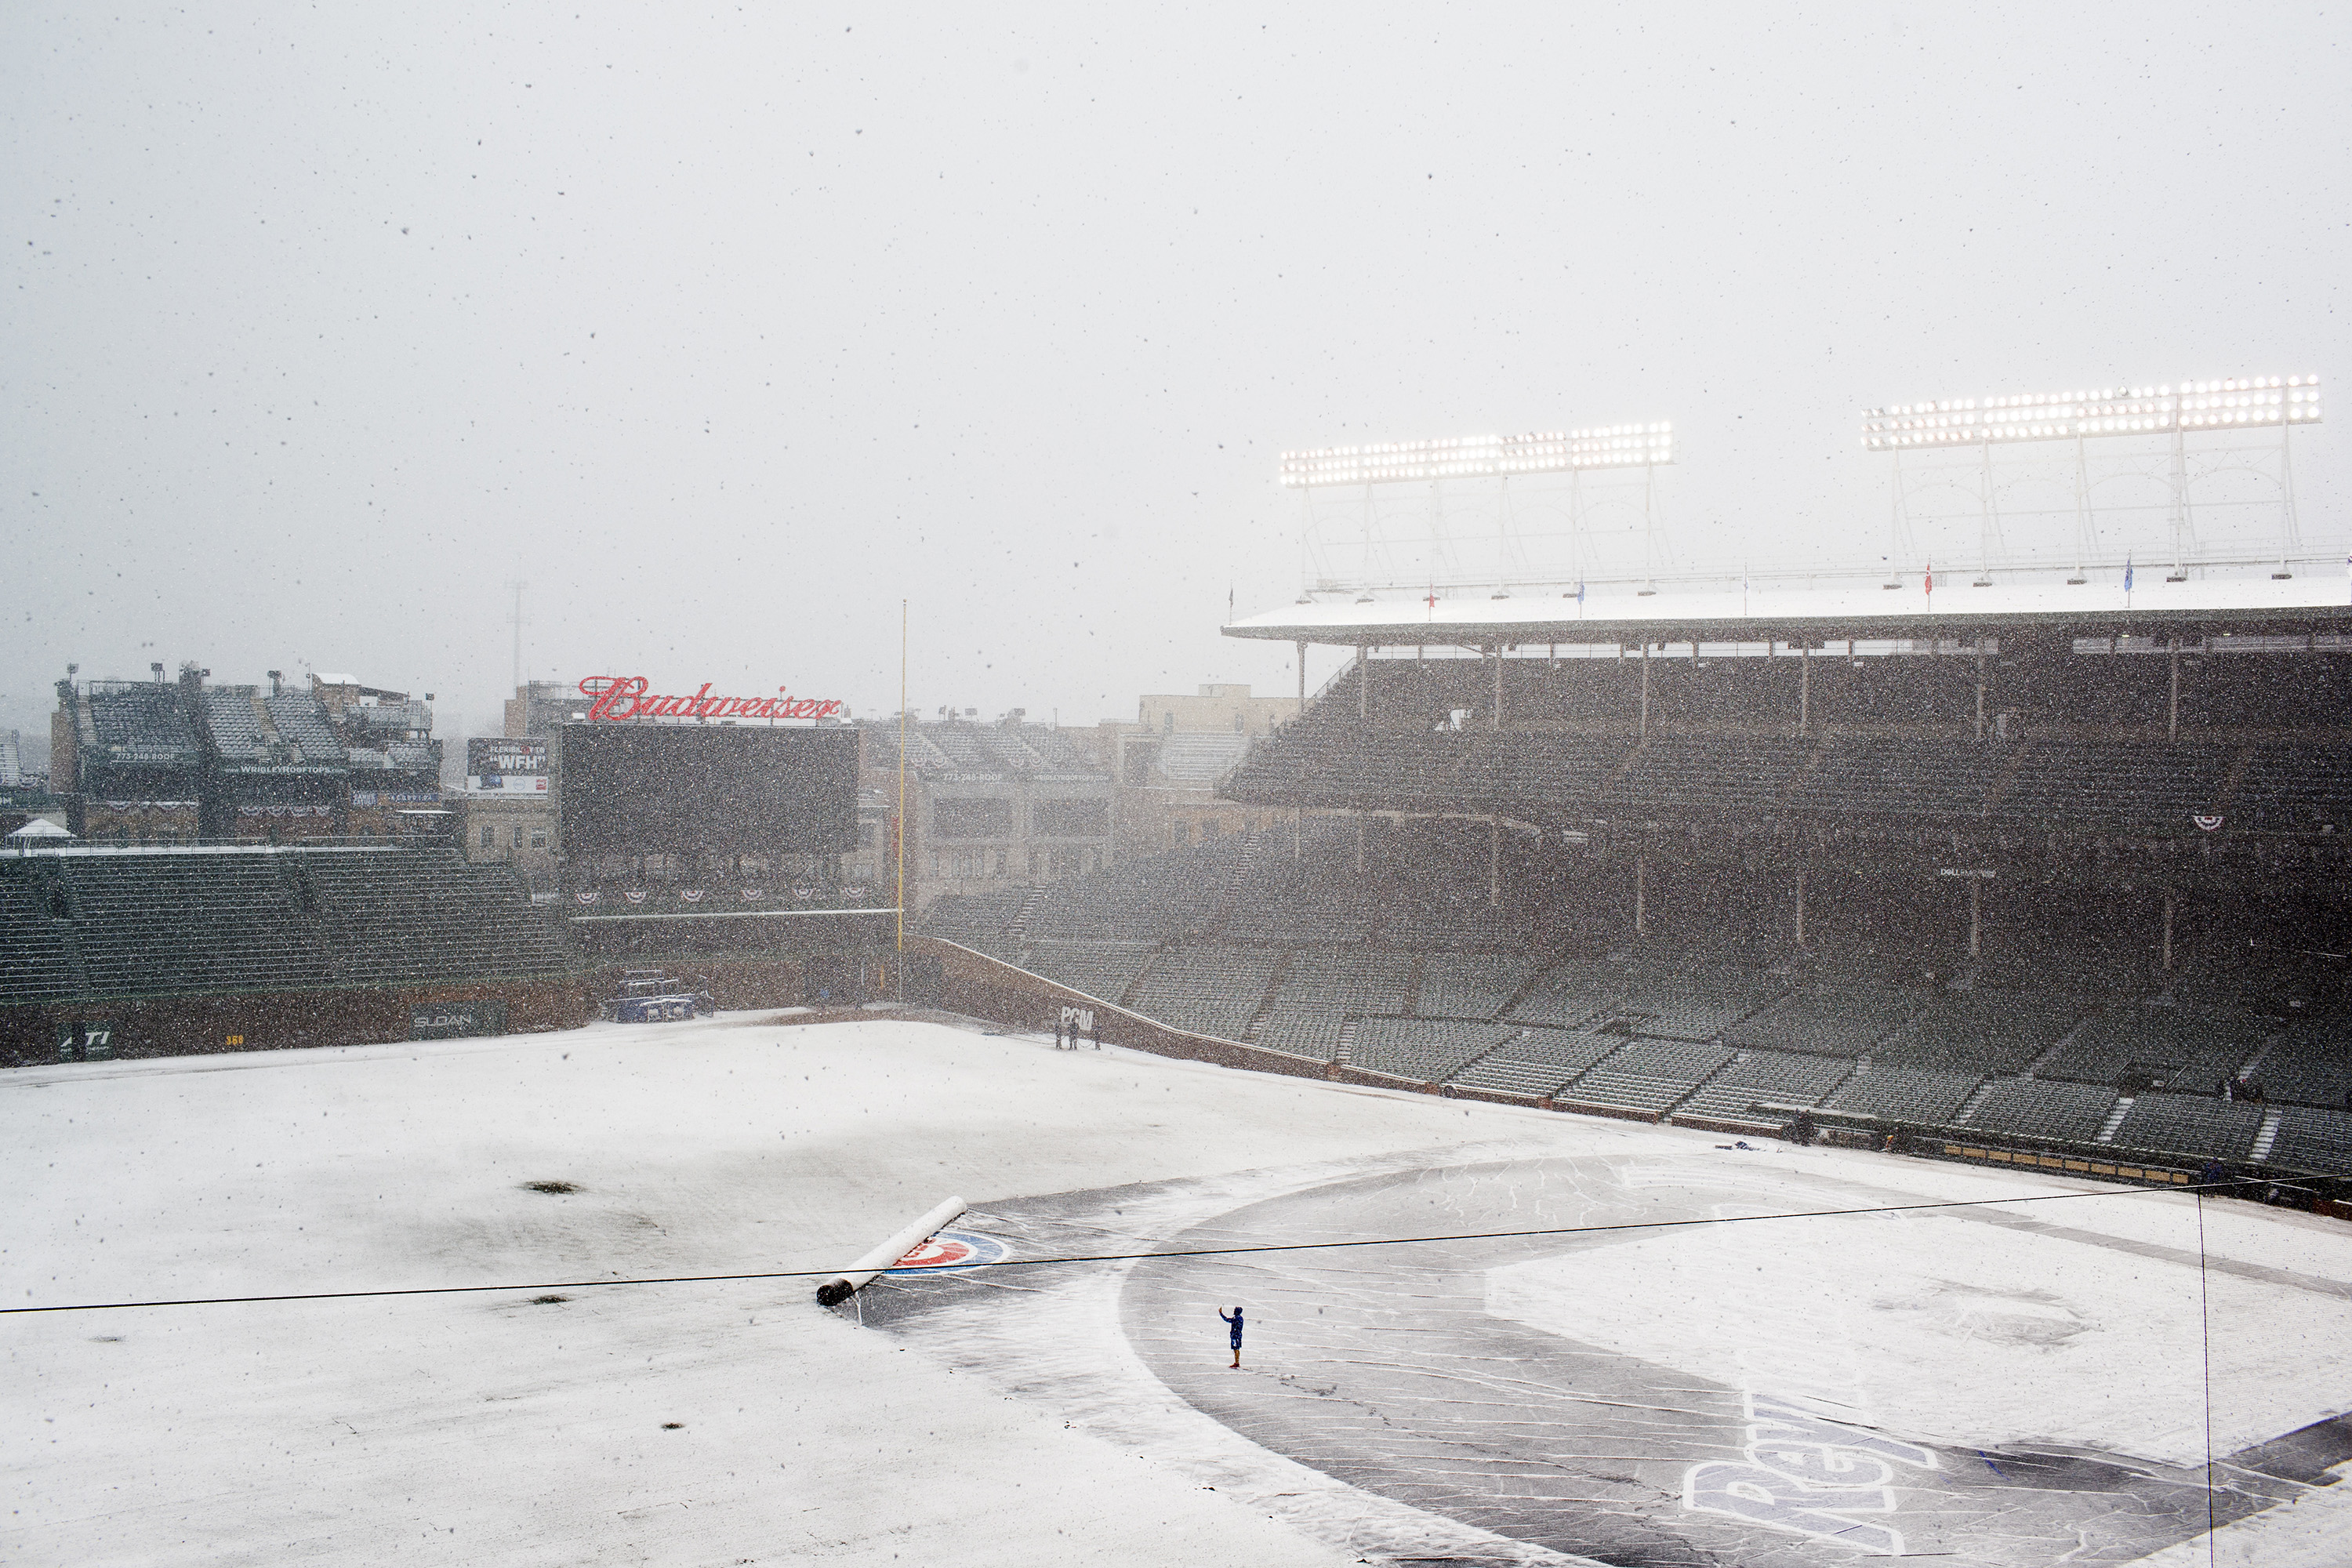 Snow delay: Cubs postpone home opener to Tuesday